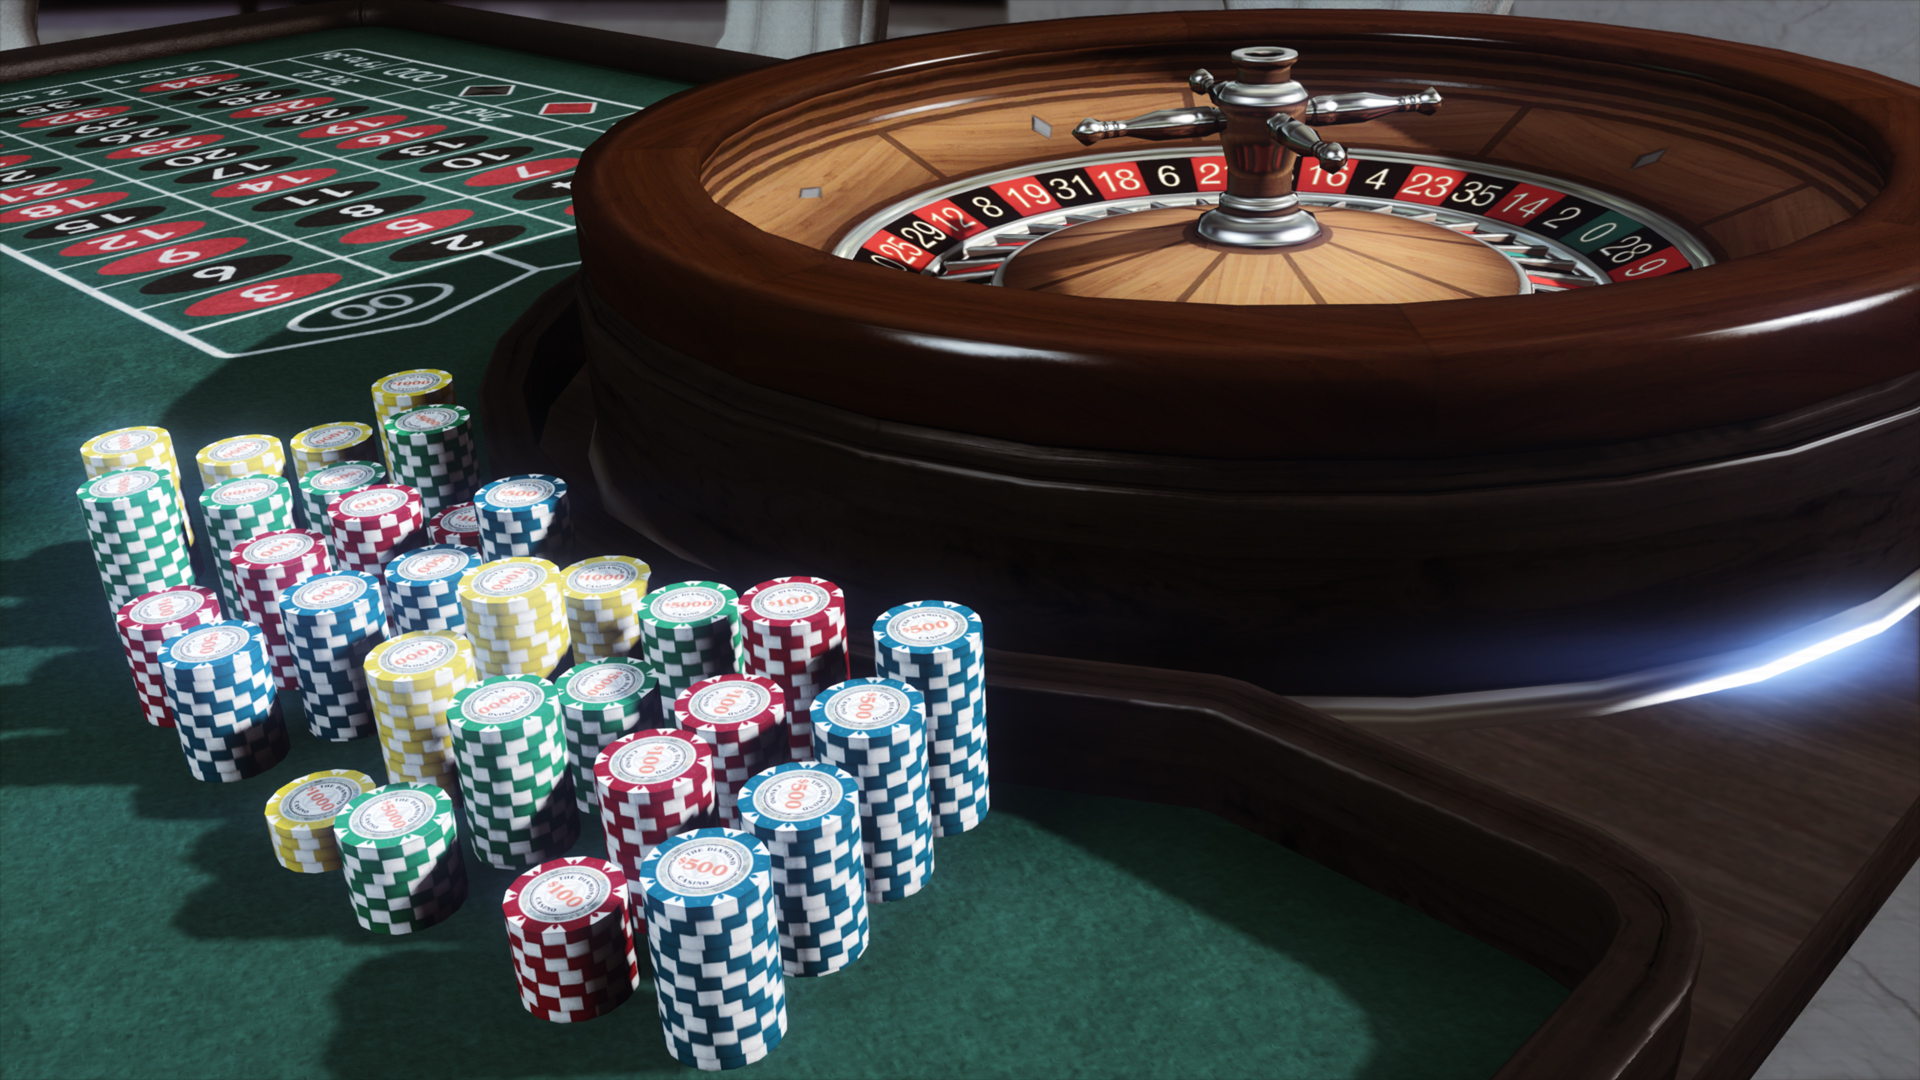 Just Play Online Poker Or Badugi With Trusted Online Gambling